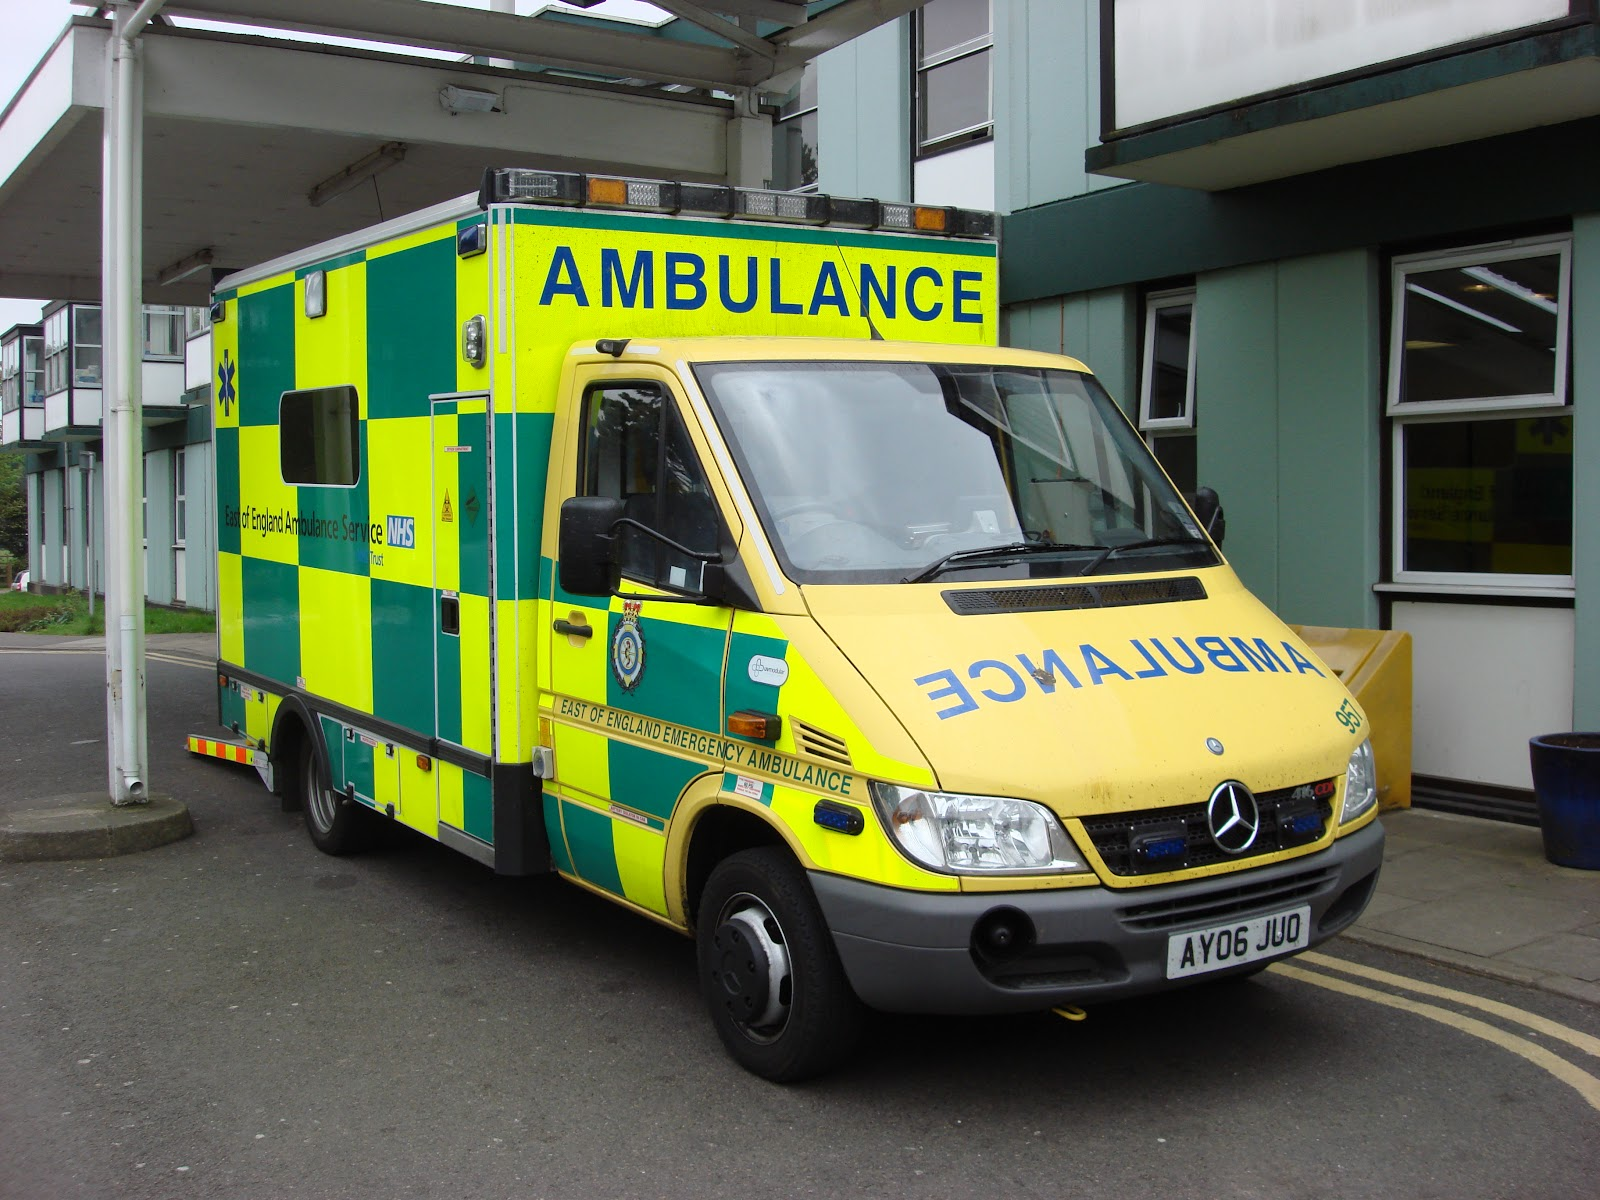 caring for elderly parents at home - ambulance